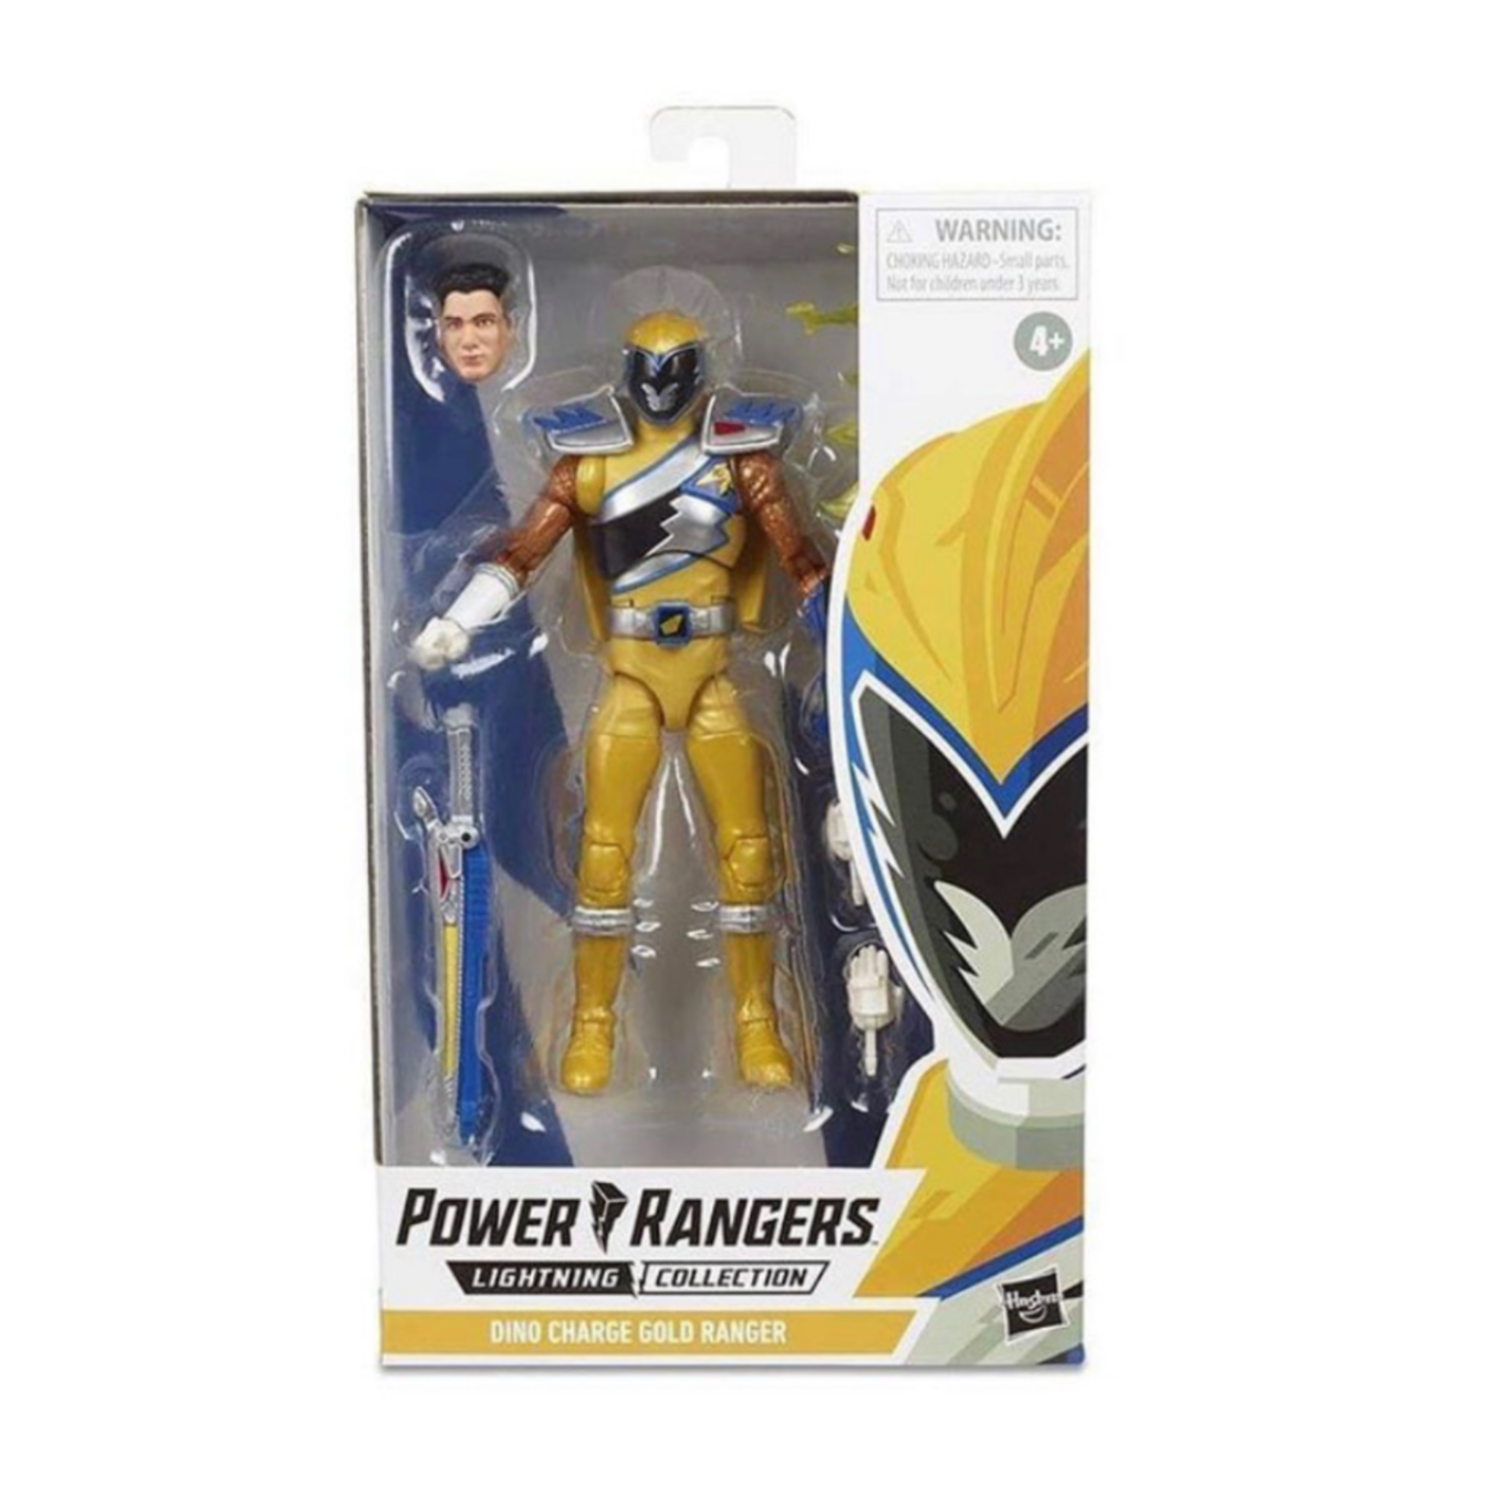 Hasbro's Lightning Collection Dino Charge Gold Ranger Figure